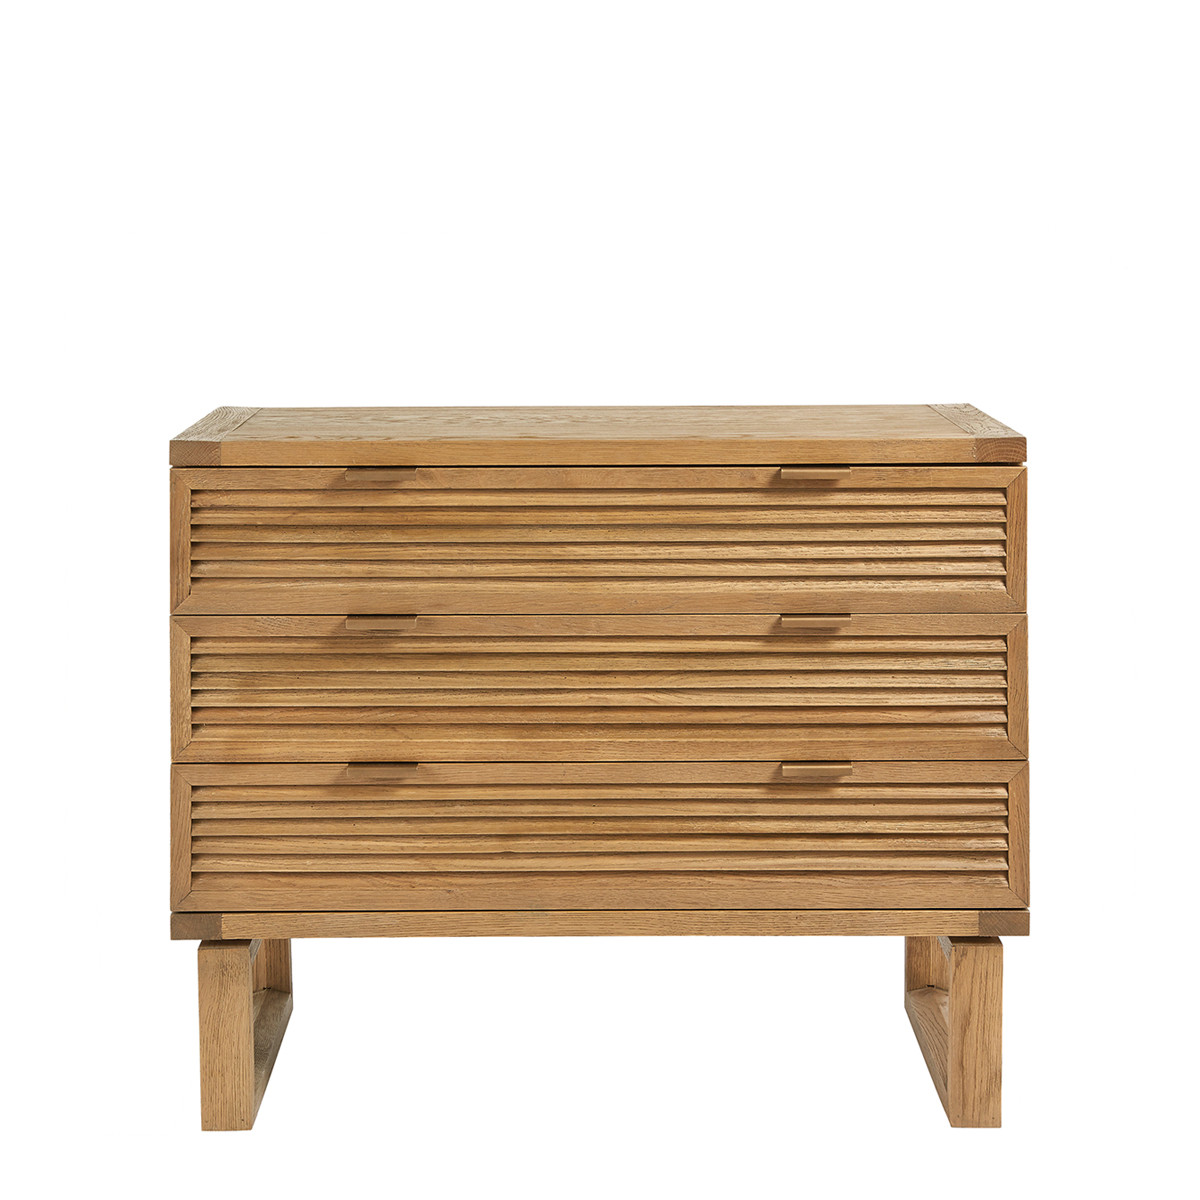 DINA CHEST OF DRAWERS- NATURAL